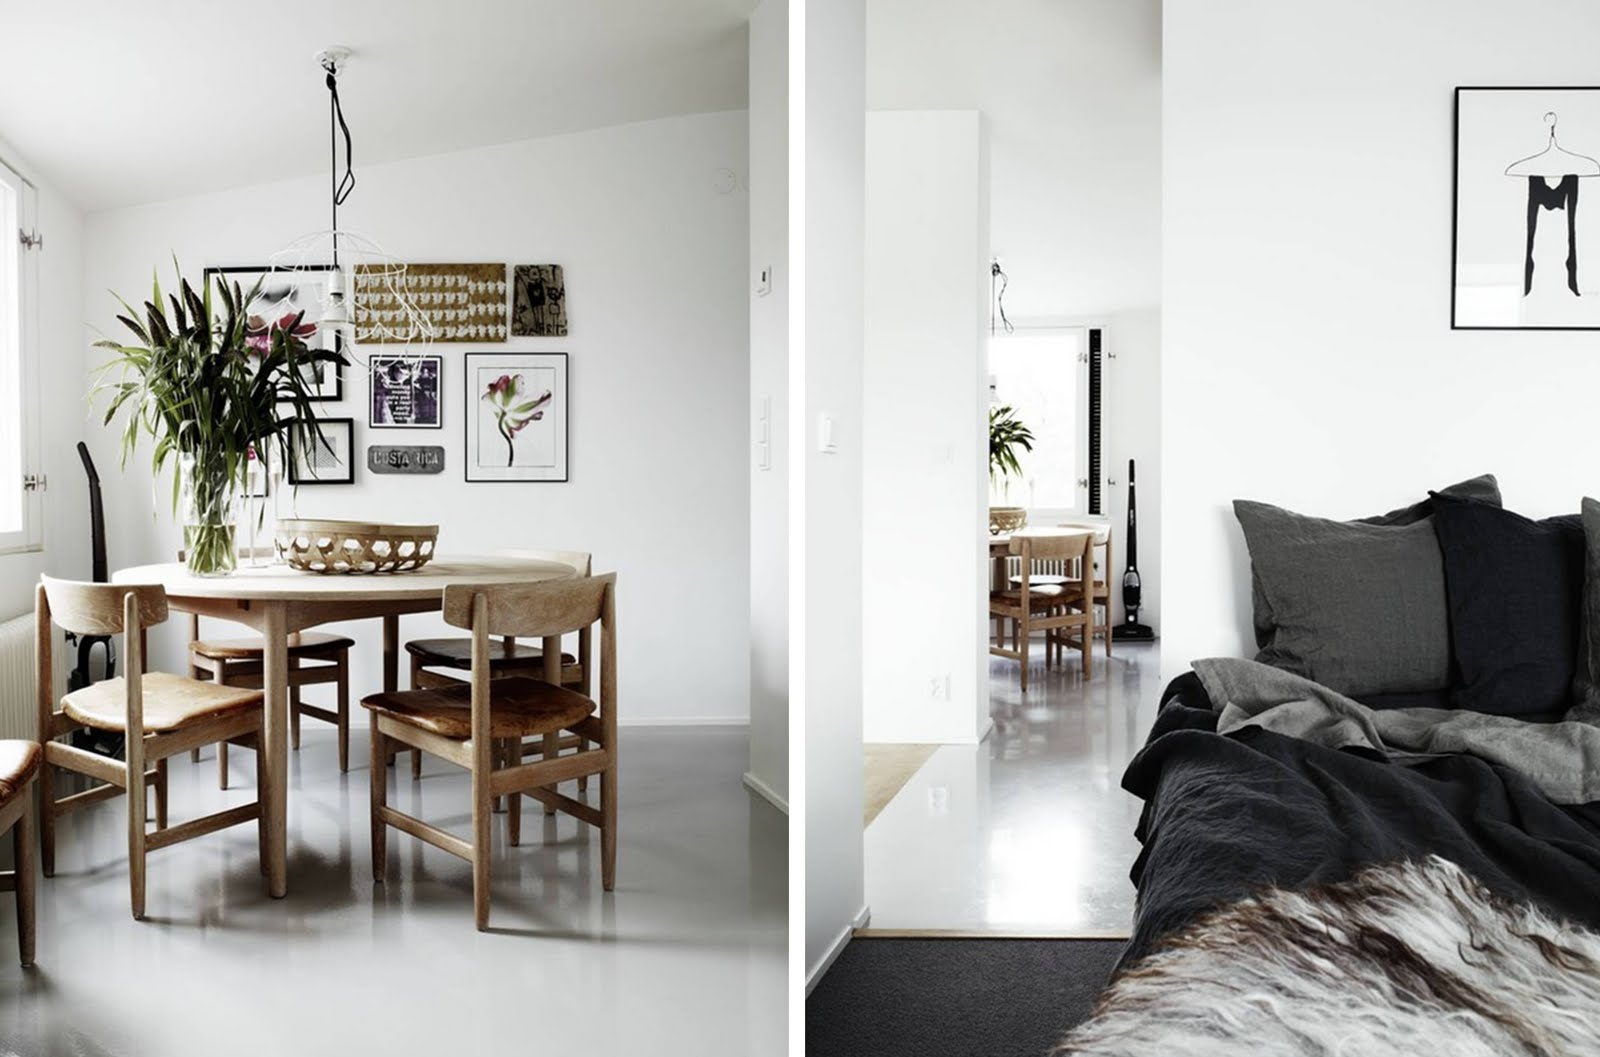 Thinks of Home: Stile svedese